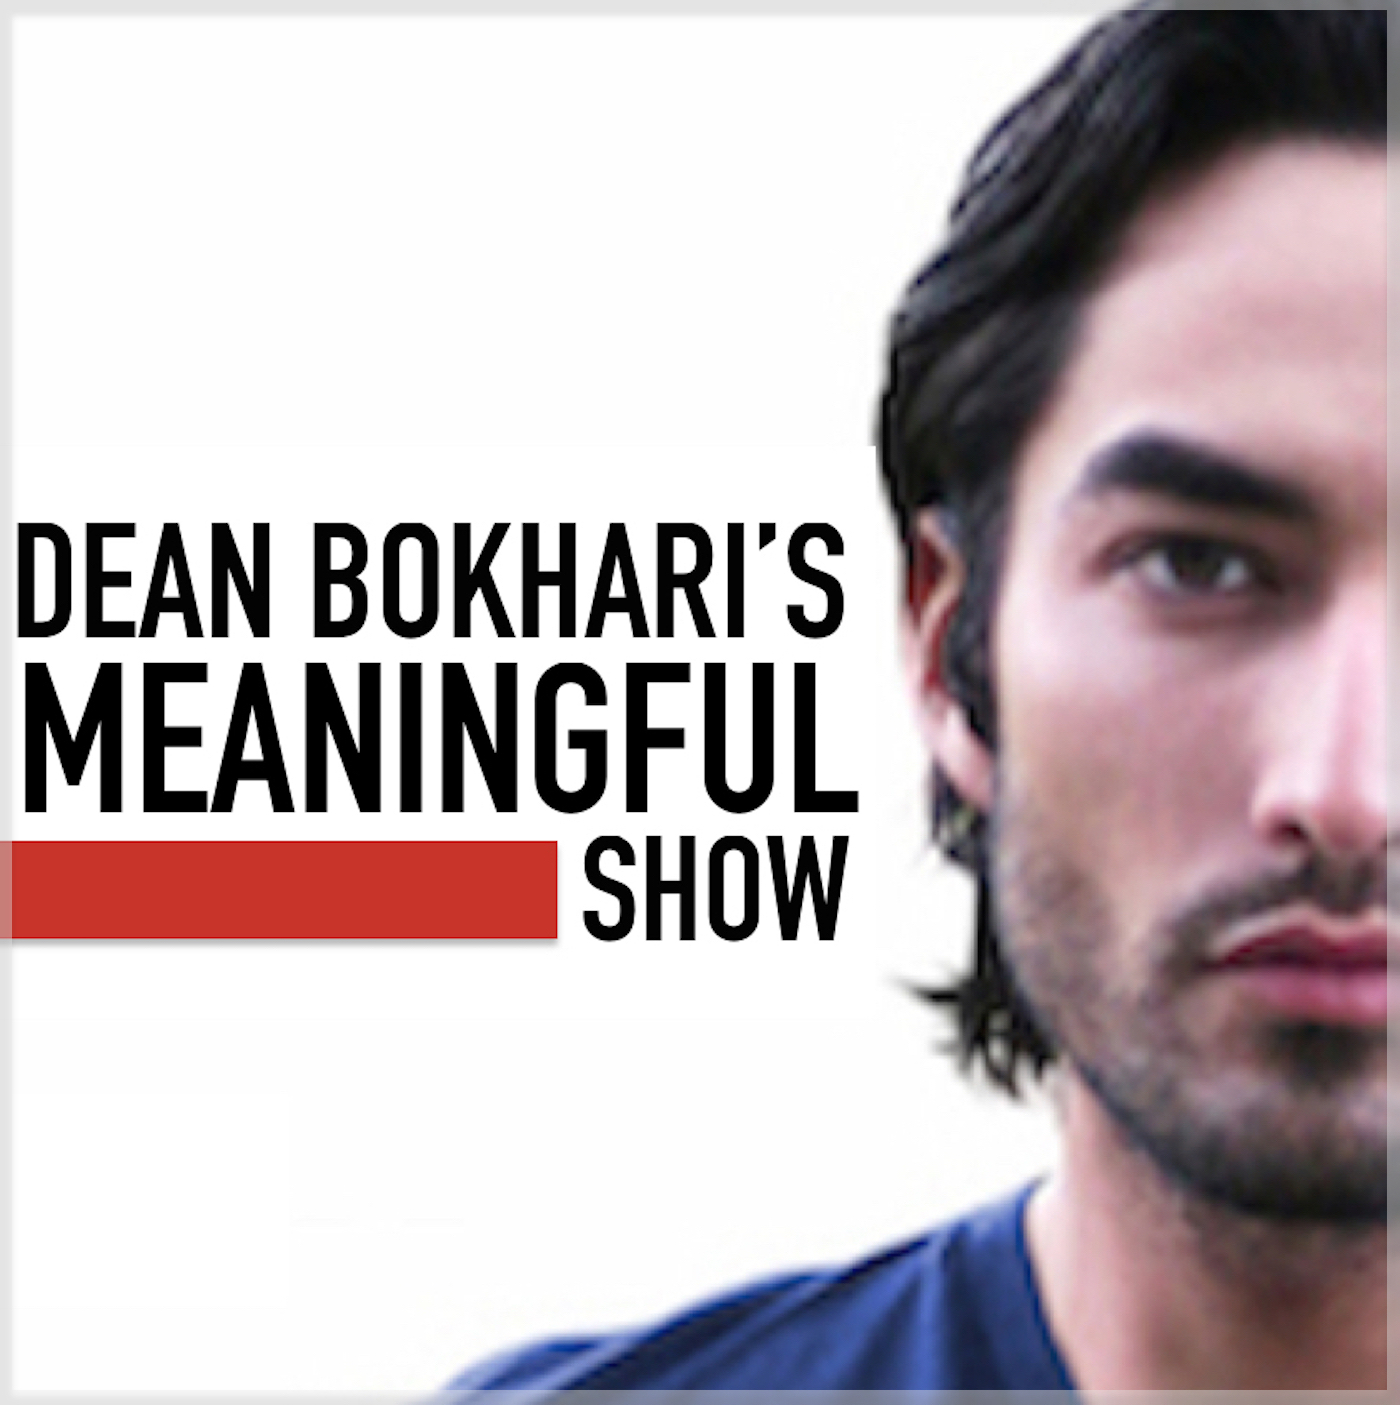 Subscribe to the Meaningful Show With Dean Bokhari on iTunes